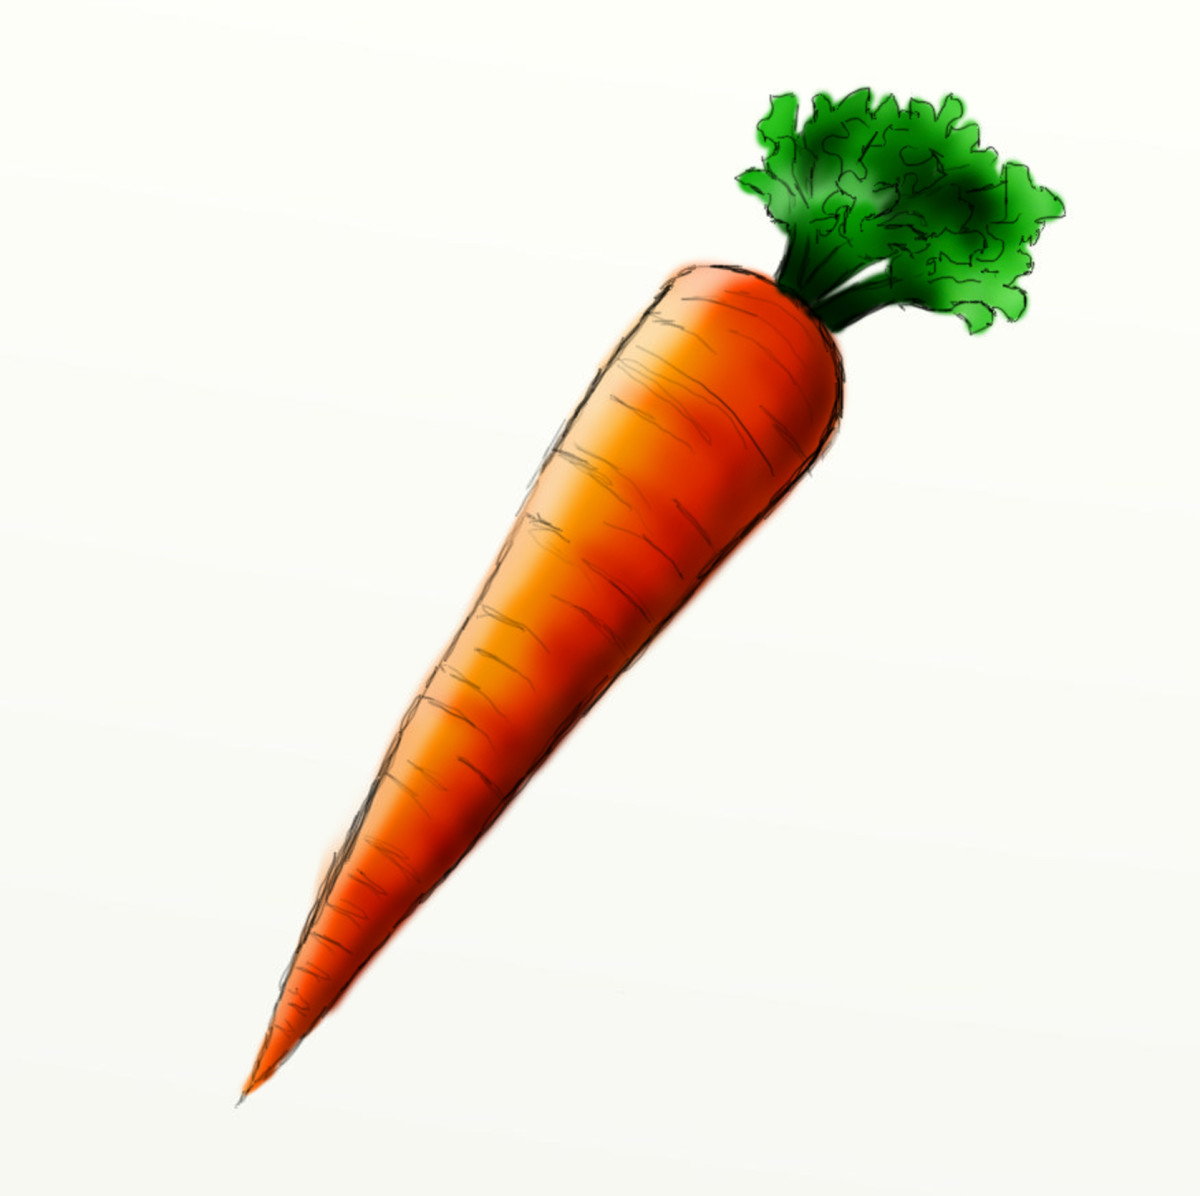 How to draw a carrot | HubPages